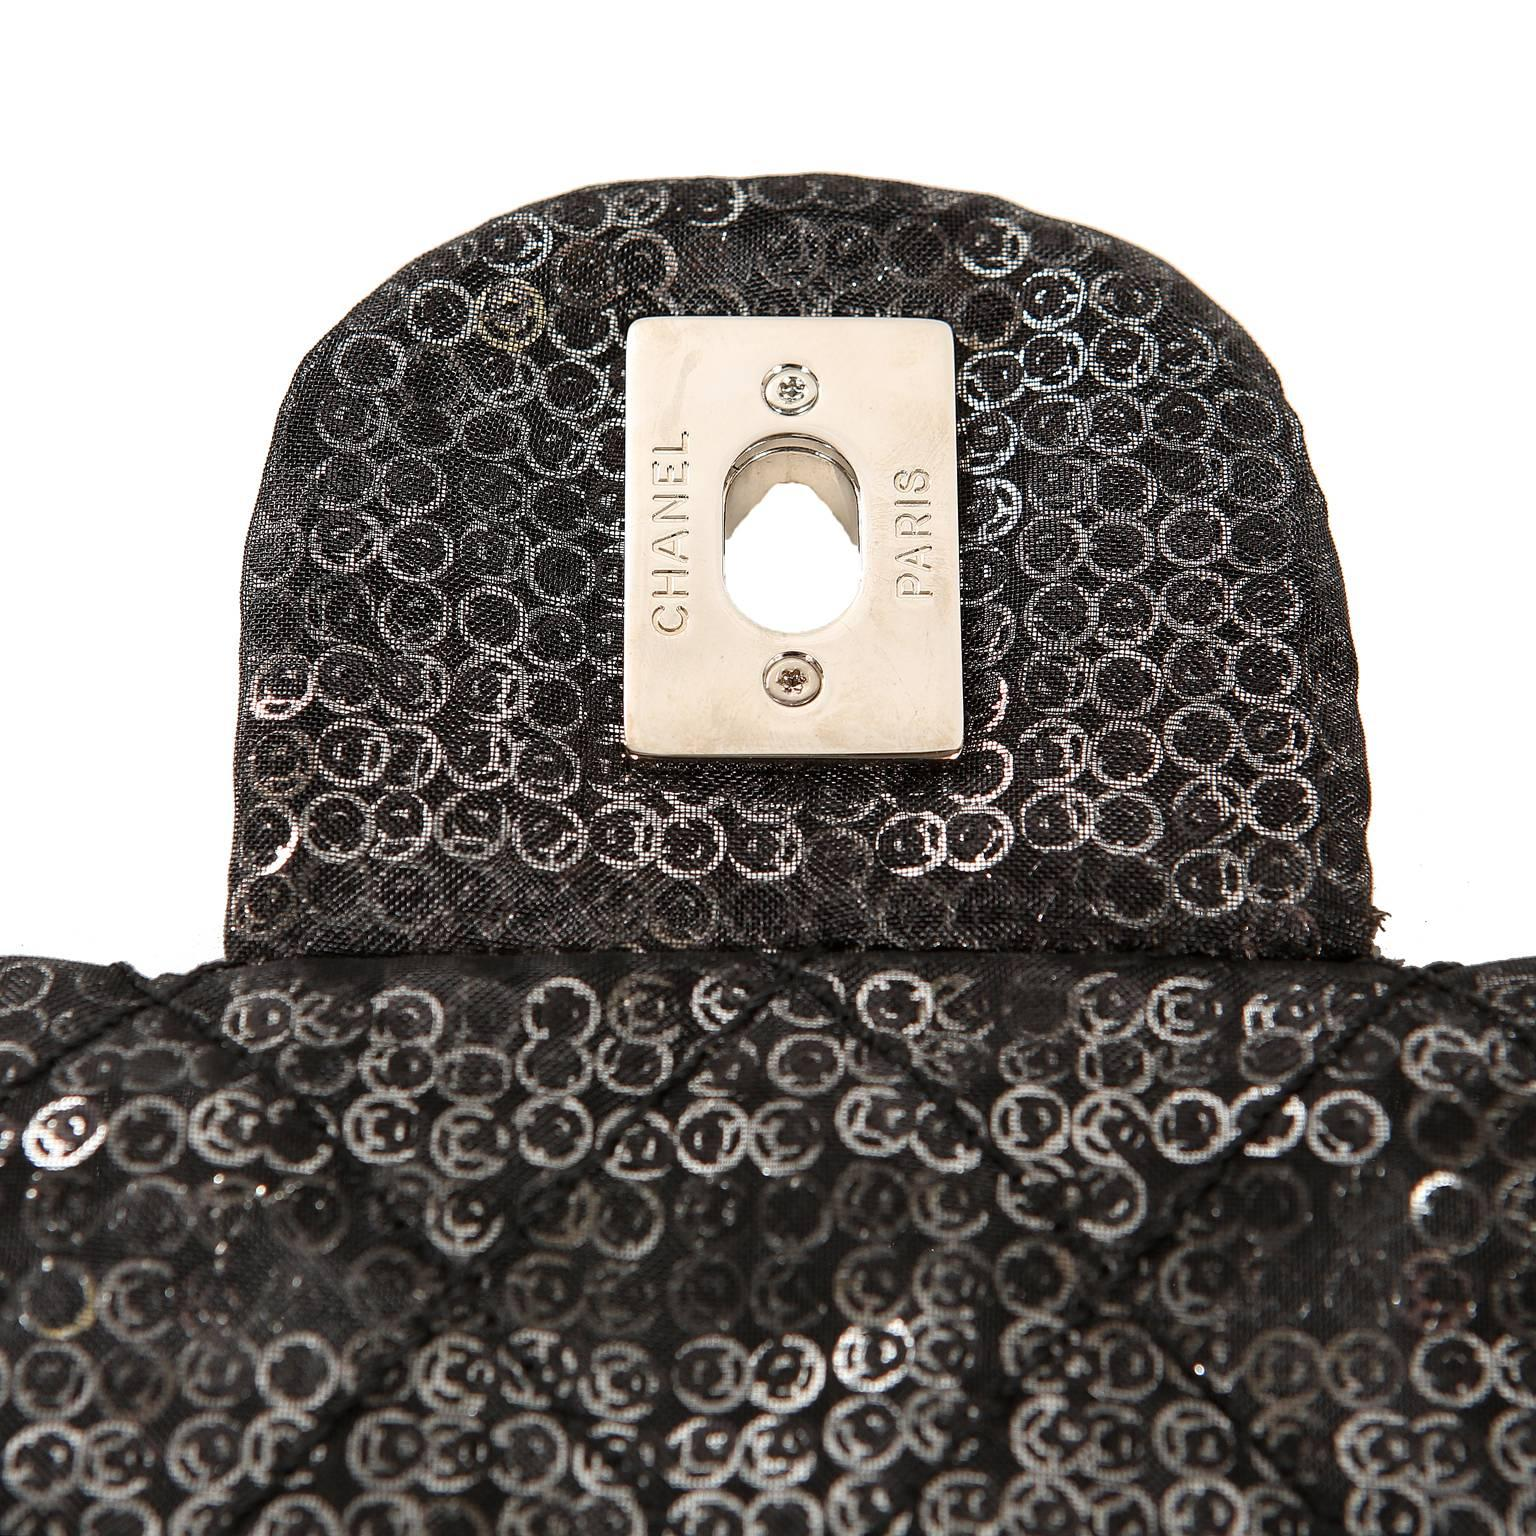 742cb5d60a73 Chanel Hidden Sequins Jumbo Classic Flap Bag For Sale at 1stdibs